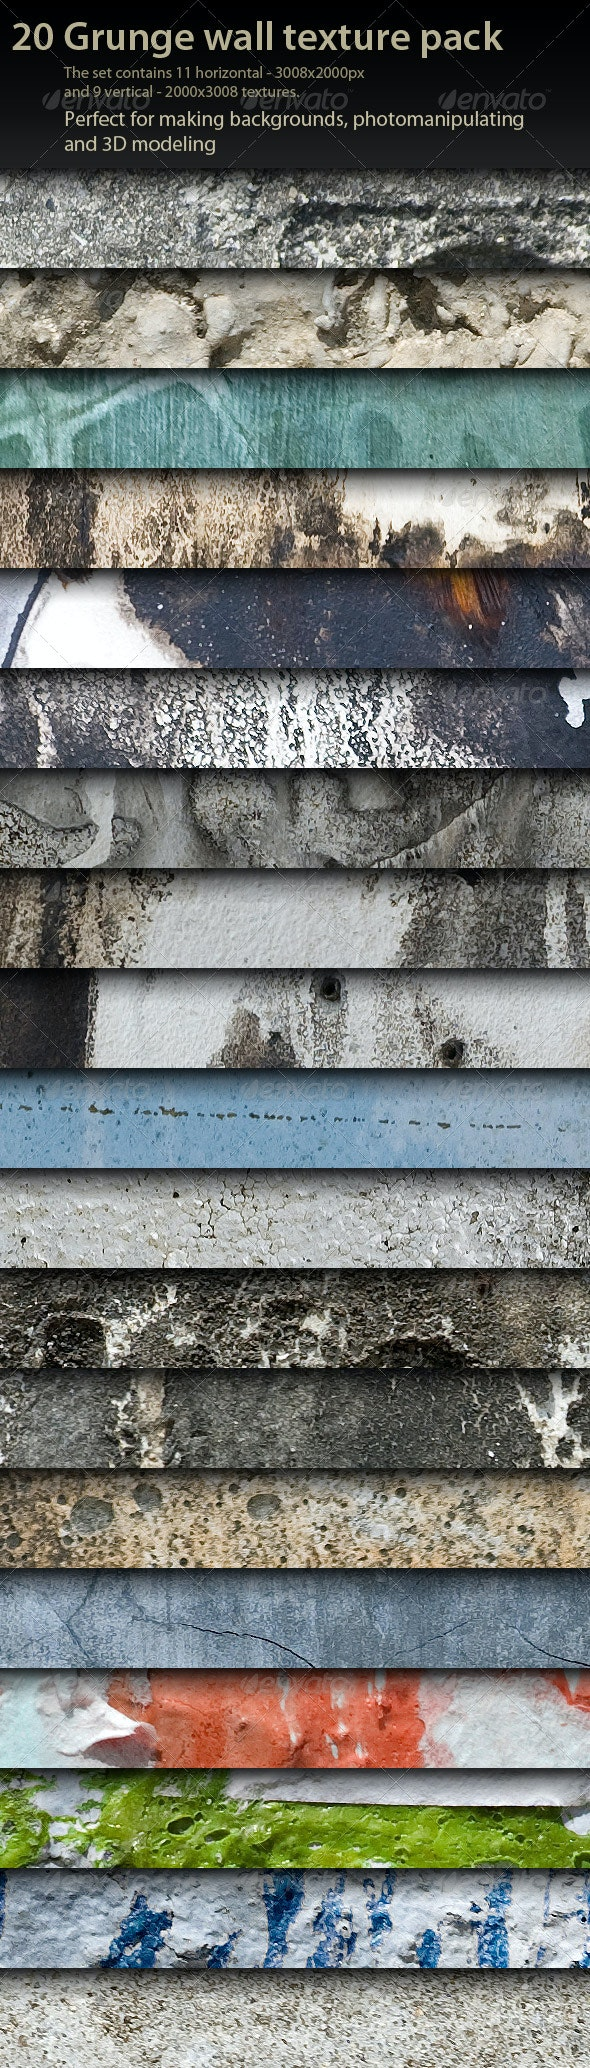 20 Grunge Wall Textures pack - Industrial / Grunge Textures